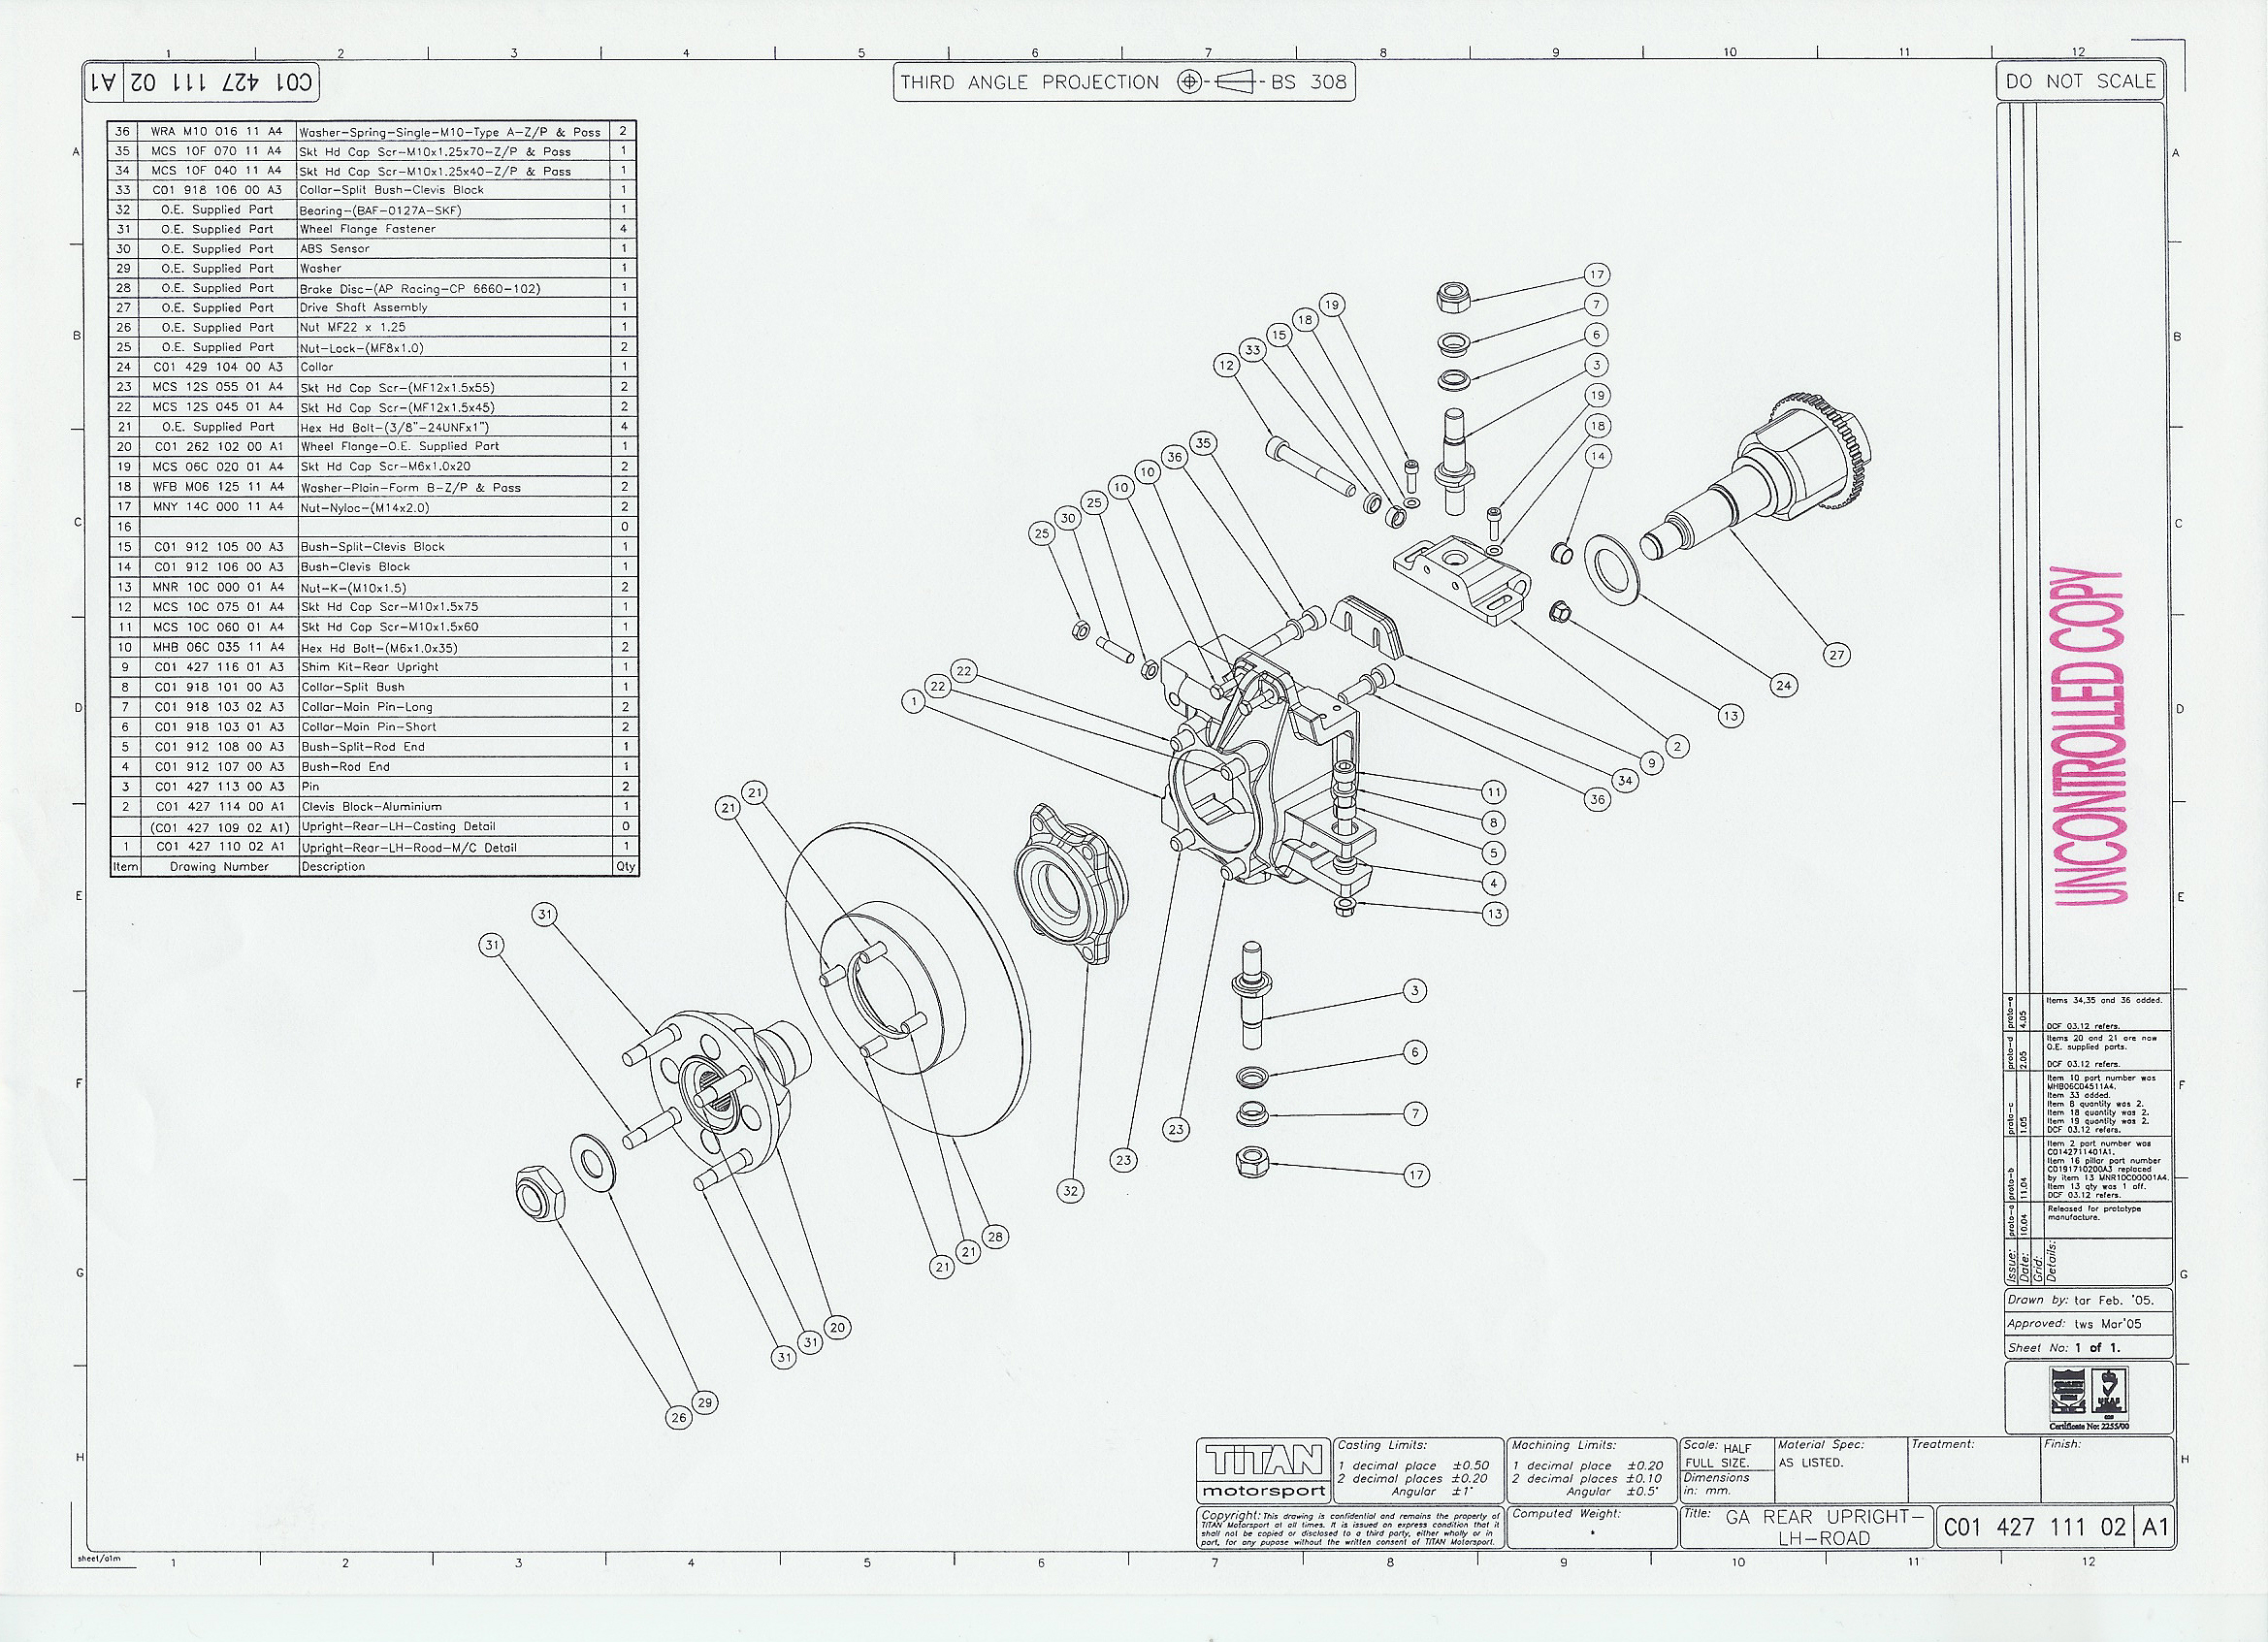 rear upright diagram links to other 7 resources caterham wiring diagram at gsmx.co